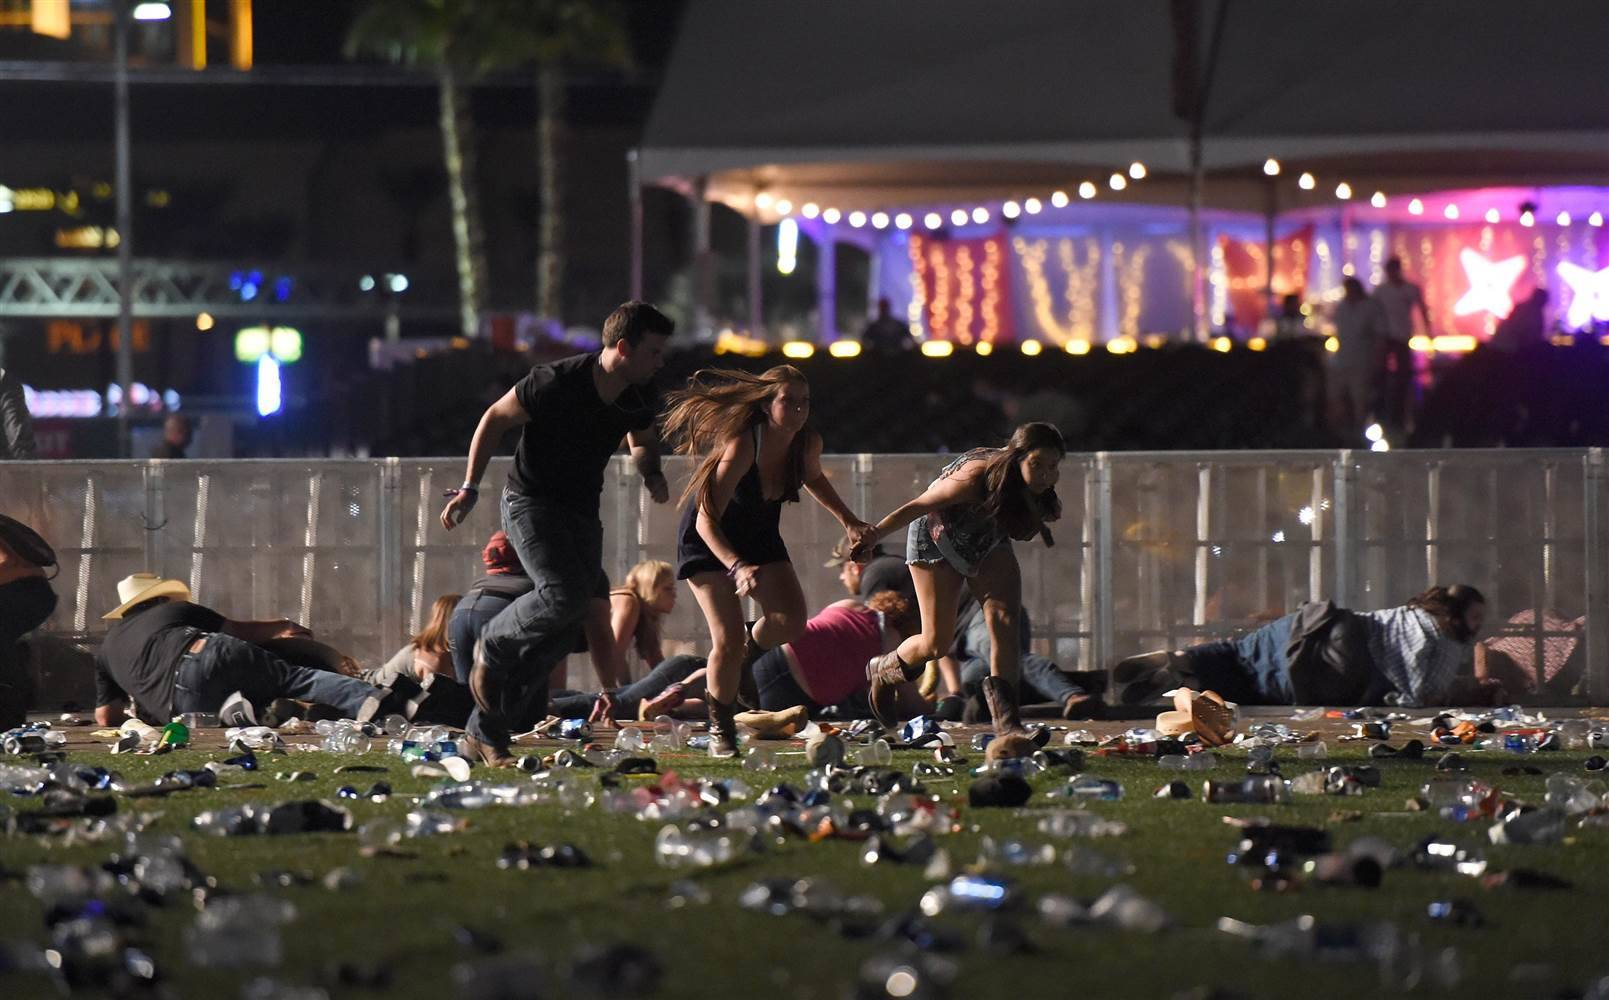 At least 58 dead and 500 injured following mass shooting at Route 91 Harvest Festival